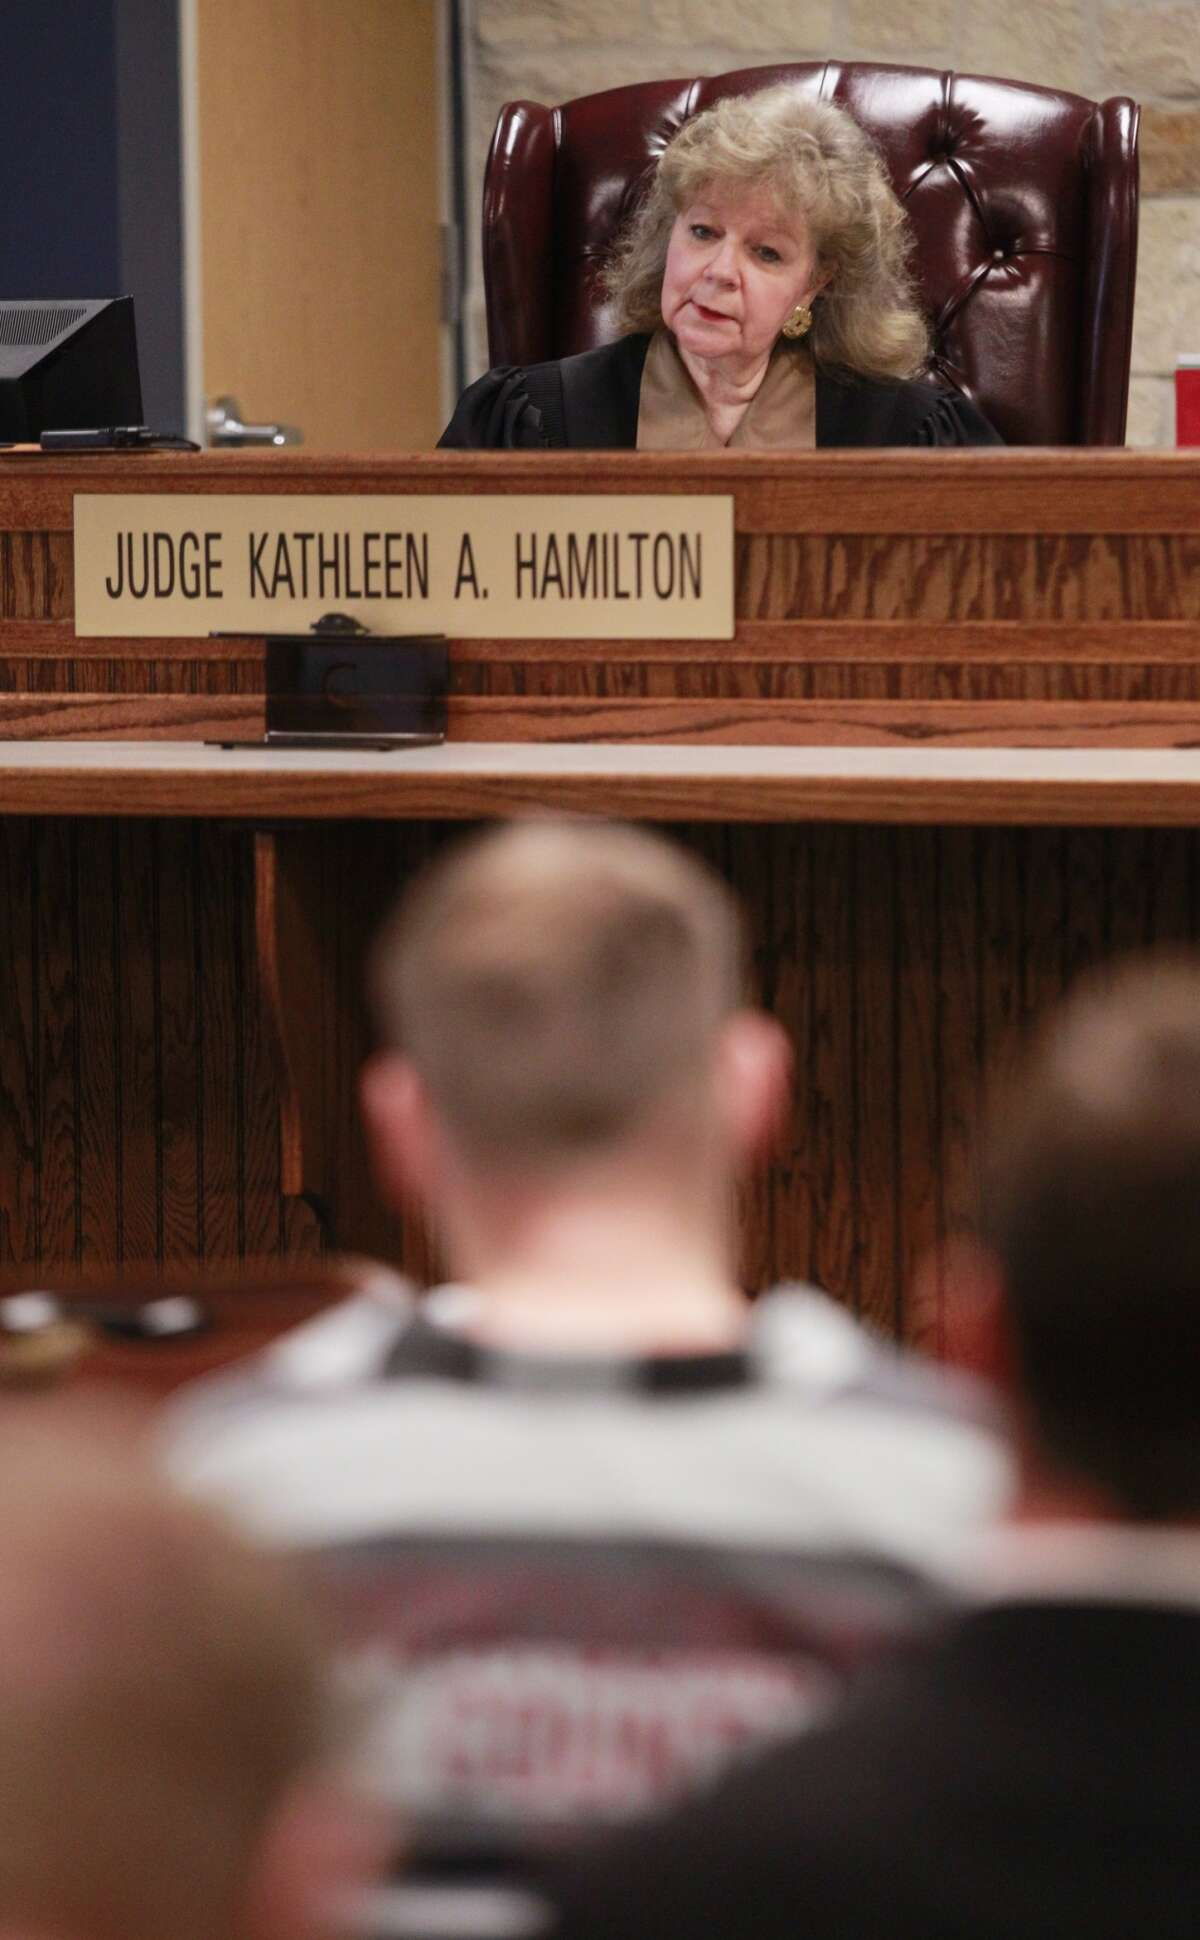 Donald Collins sits in the 359th State District Court on Thursday, March 6, 2014, in Conroe as Judge Kathleen Hamilton rules that he will be tried as an adult for allegedly setting 8-year-old Robert Middleton on fire with gasoline in 1998. Robert died in 2011.